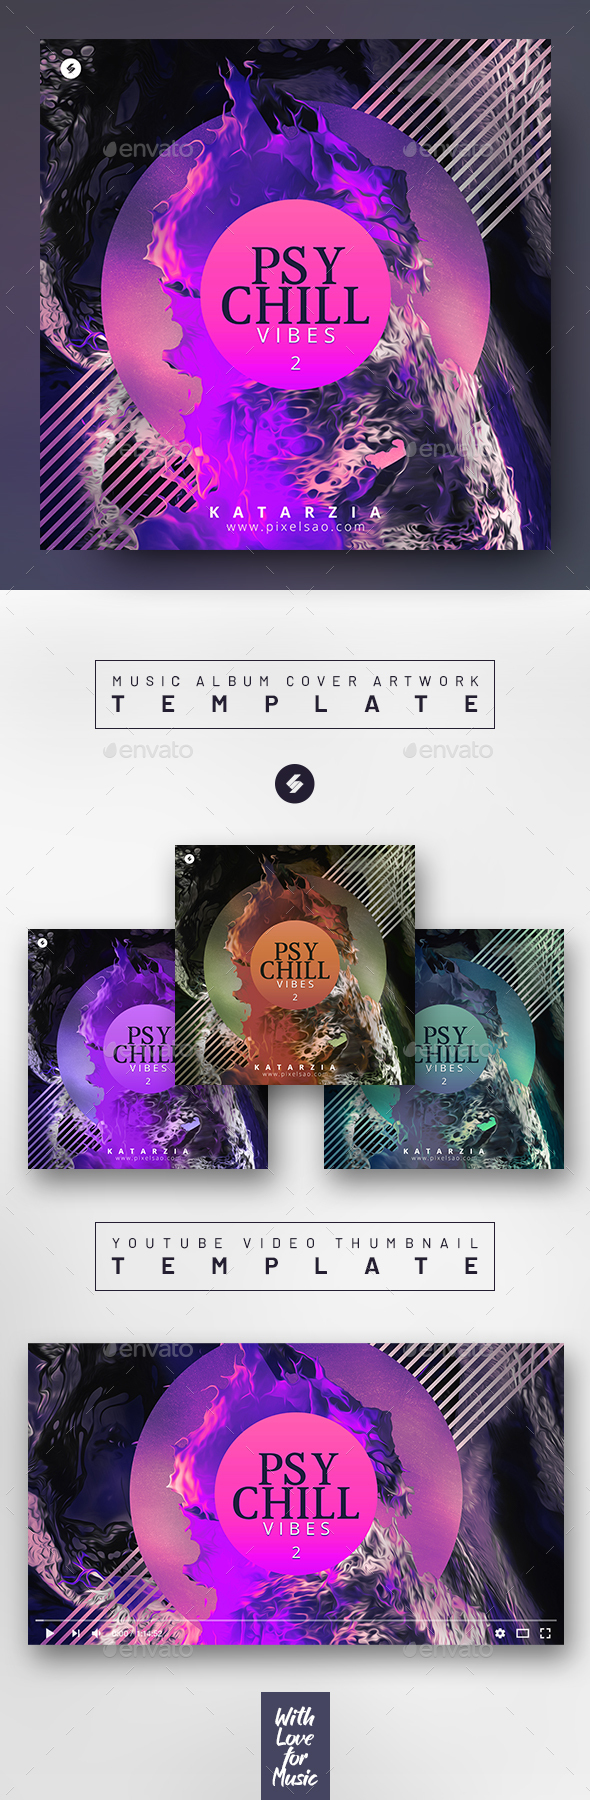 Psychill Vibes 2 – Music Album Cover Art / Video Thumbnail Template